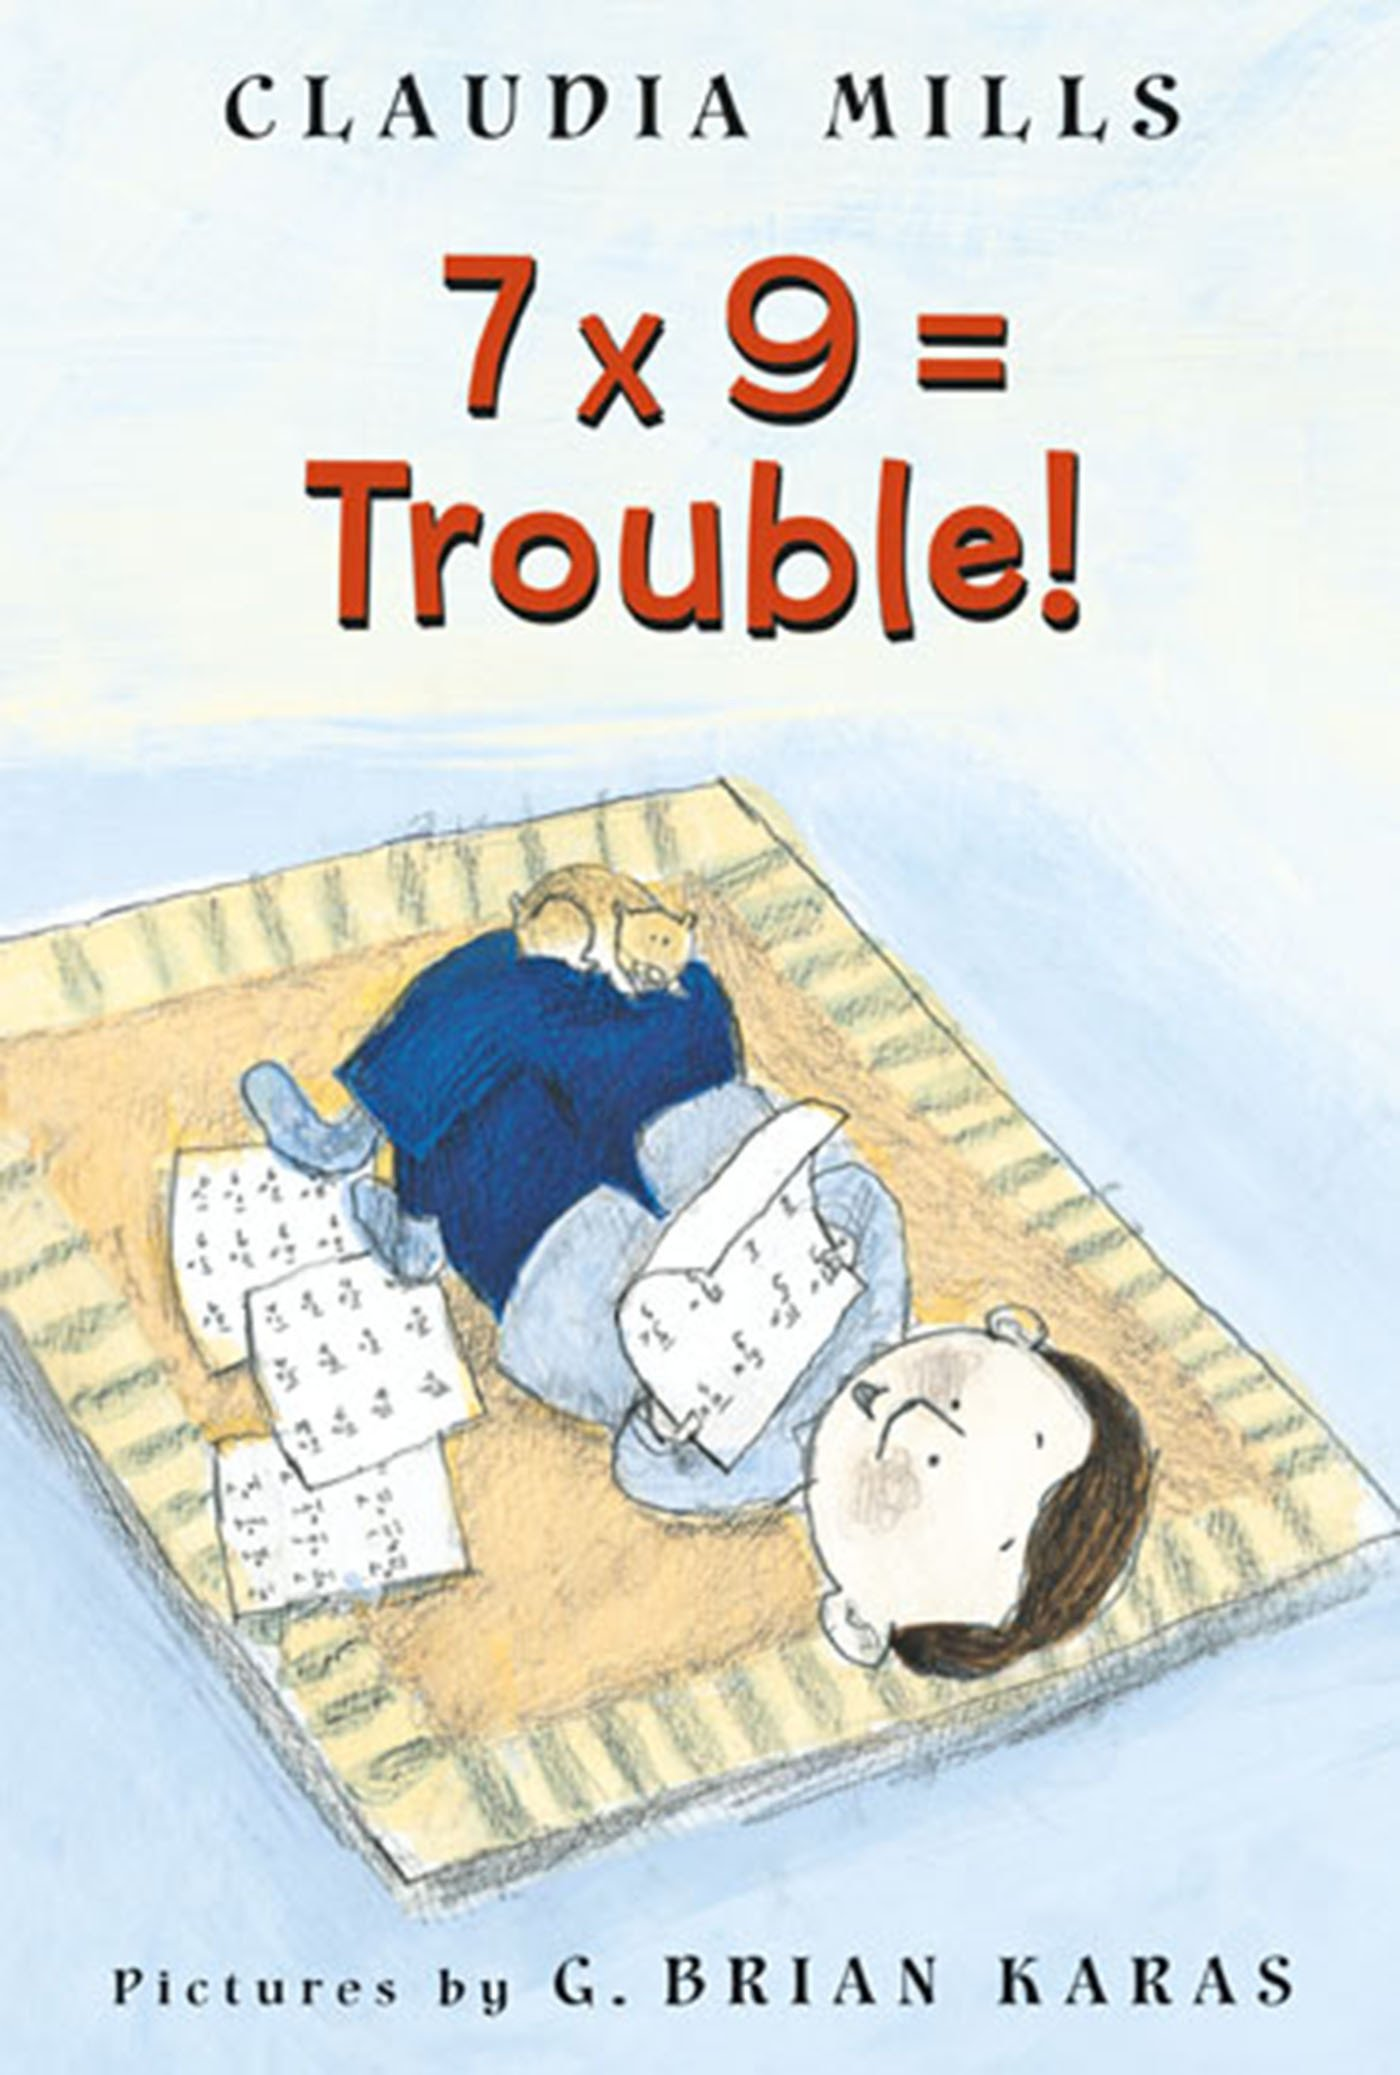 7 x 9 = Trouble!: Claudia Mills, G. Brian Karas: 9780374464523: Amazon.com:  Books